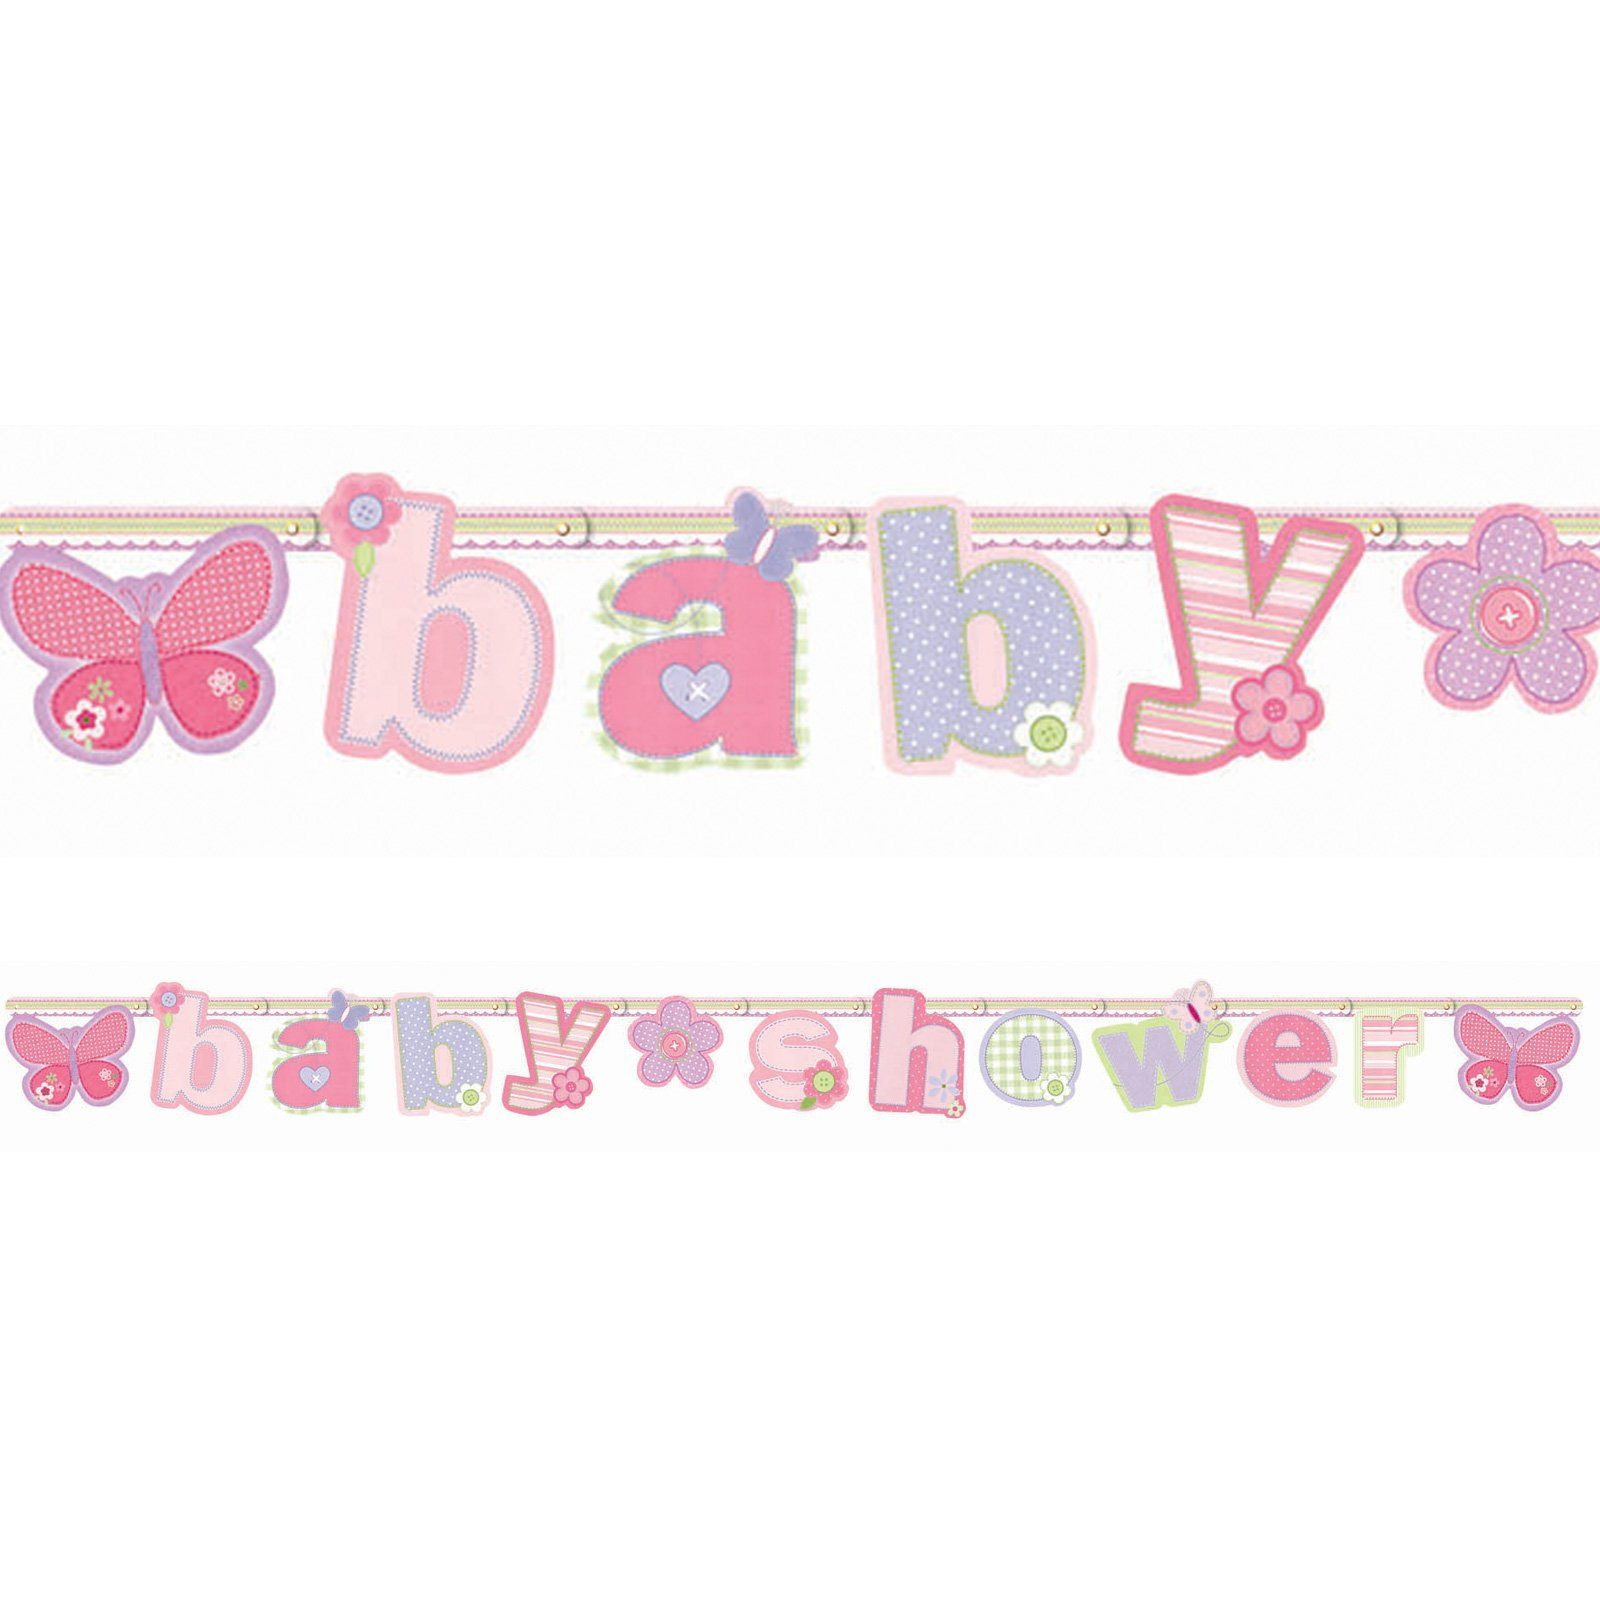 CarterS Baby Girl Letter Banner Are You Planning To Throw A Baby